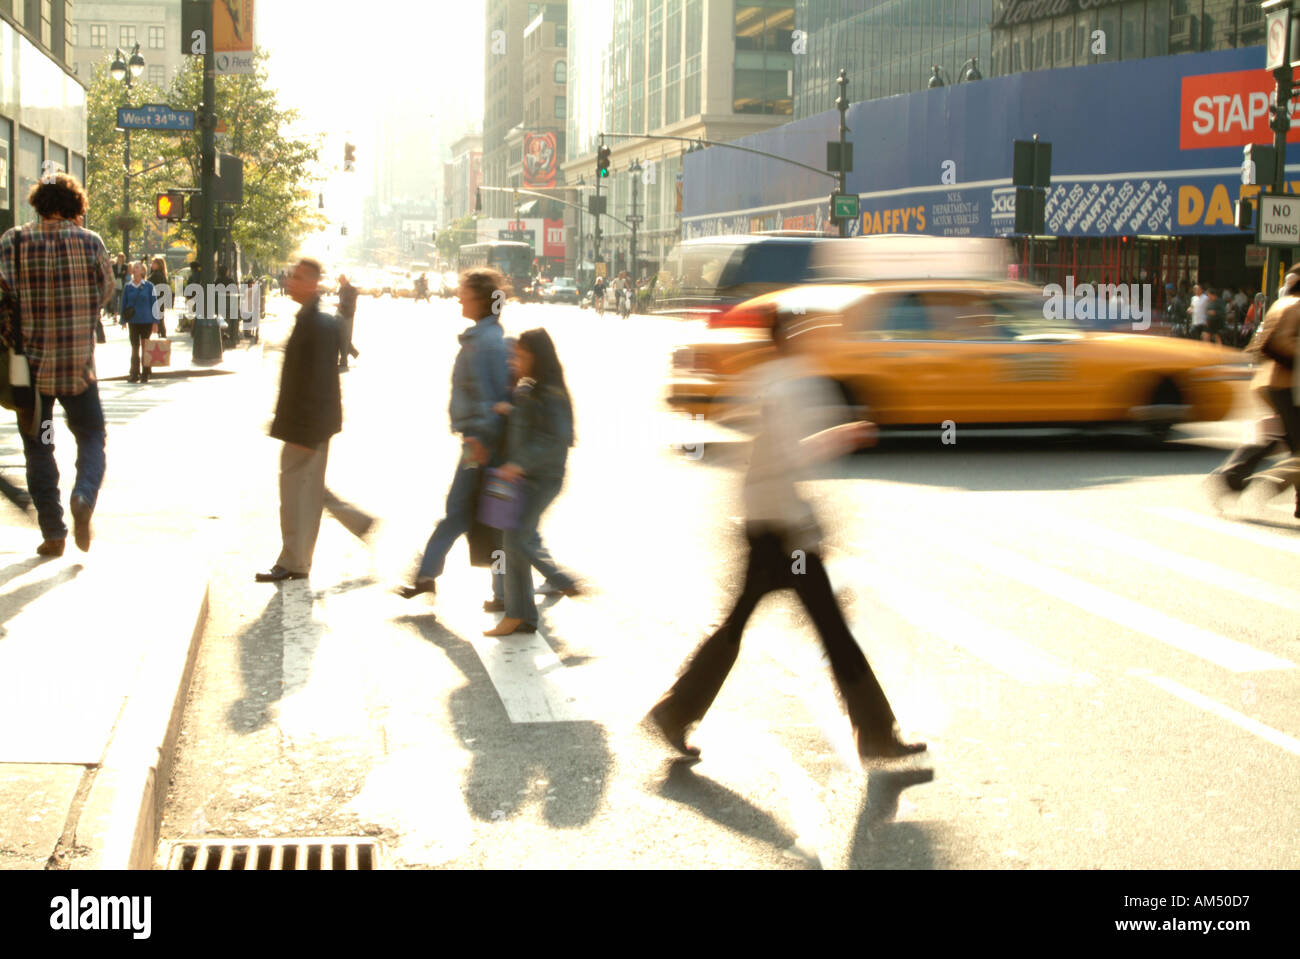 crowded New York sidewalks and streets at rush hour - Stock Image